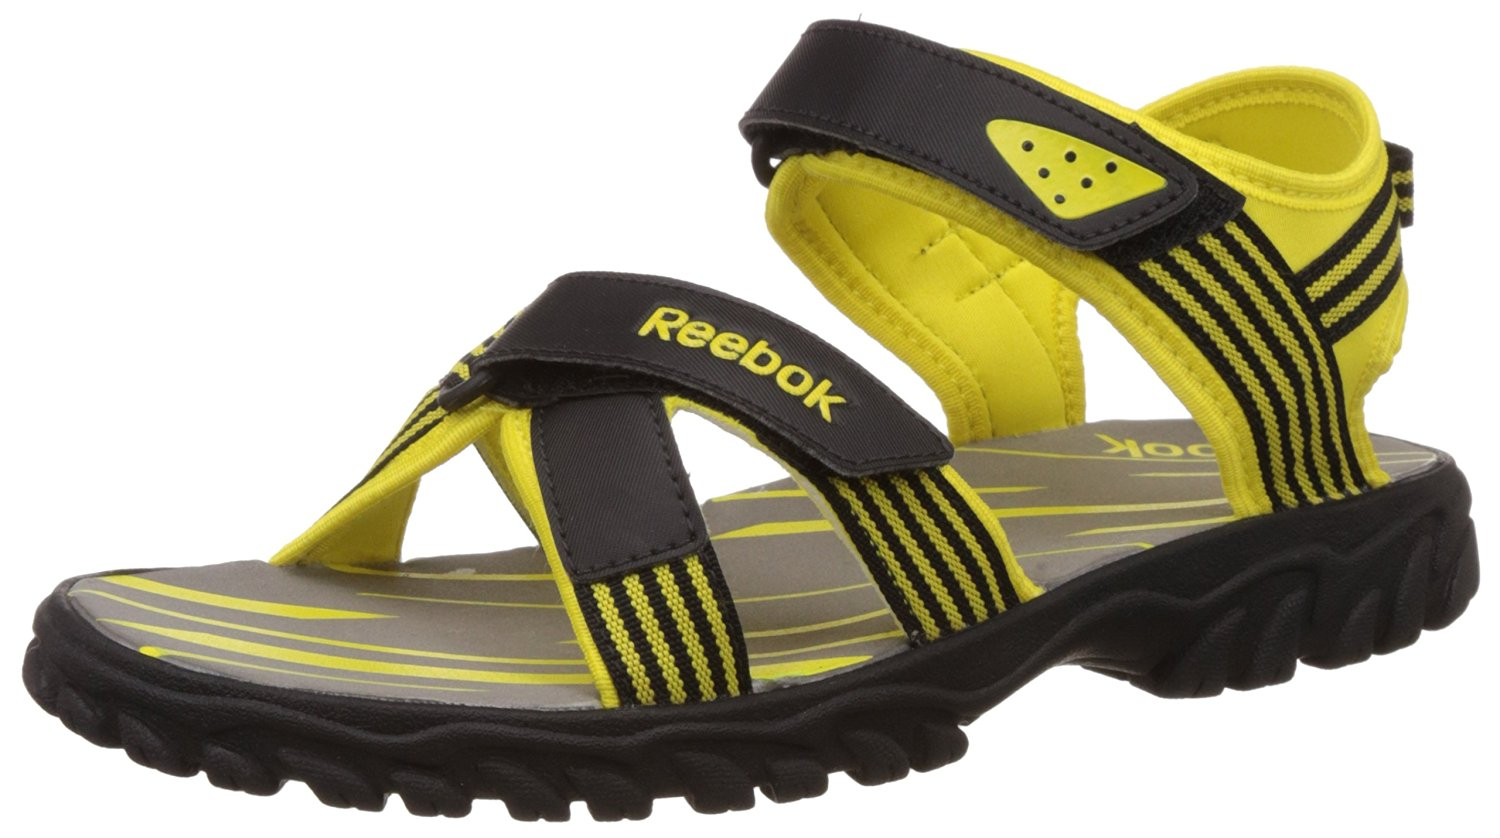 01ff3ace1 Amazon - Buy Reebok Men s Road Connect Sandals And Floaters for Rs.629 (65%  off)